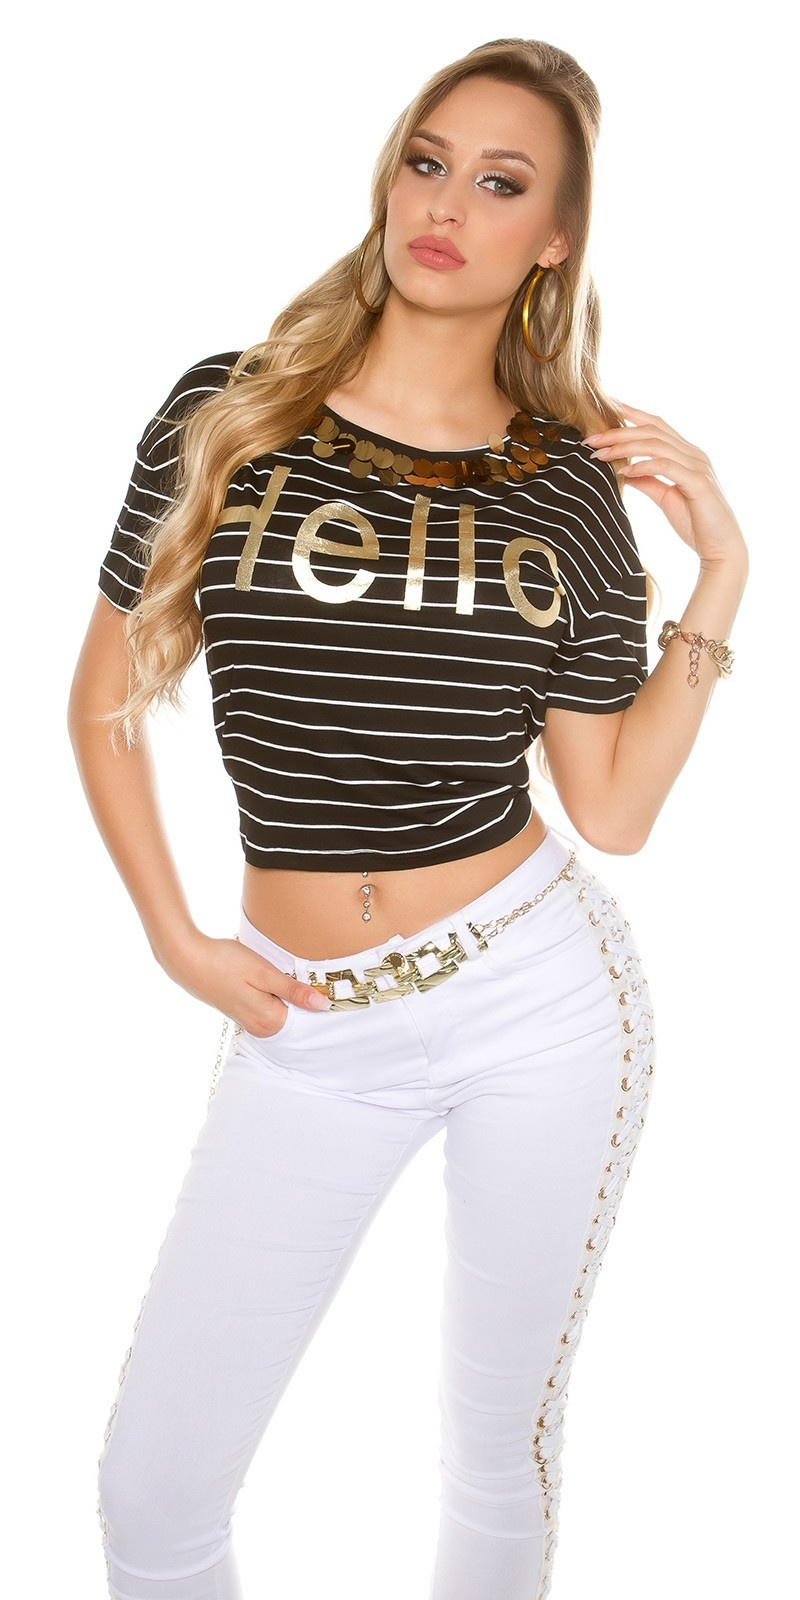 Trendy T-Shirt striped HELLO with sequins Black